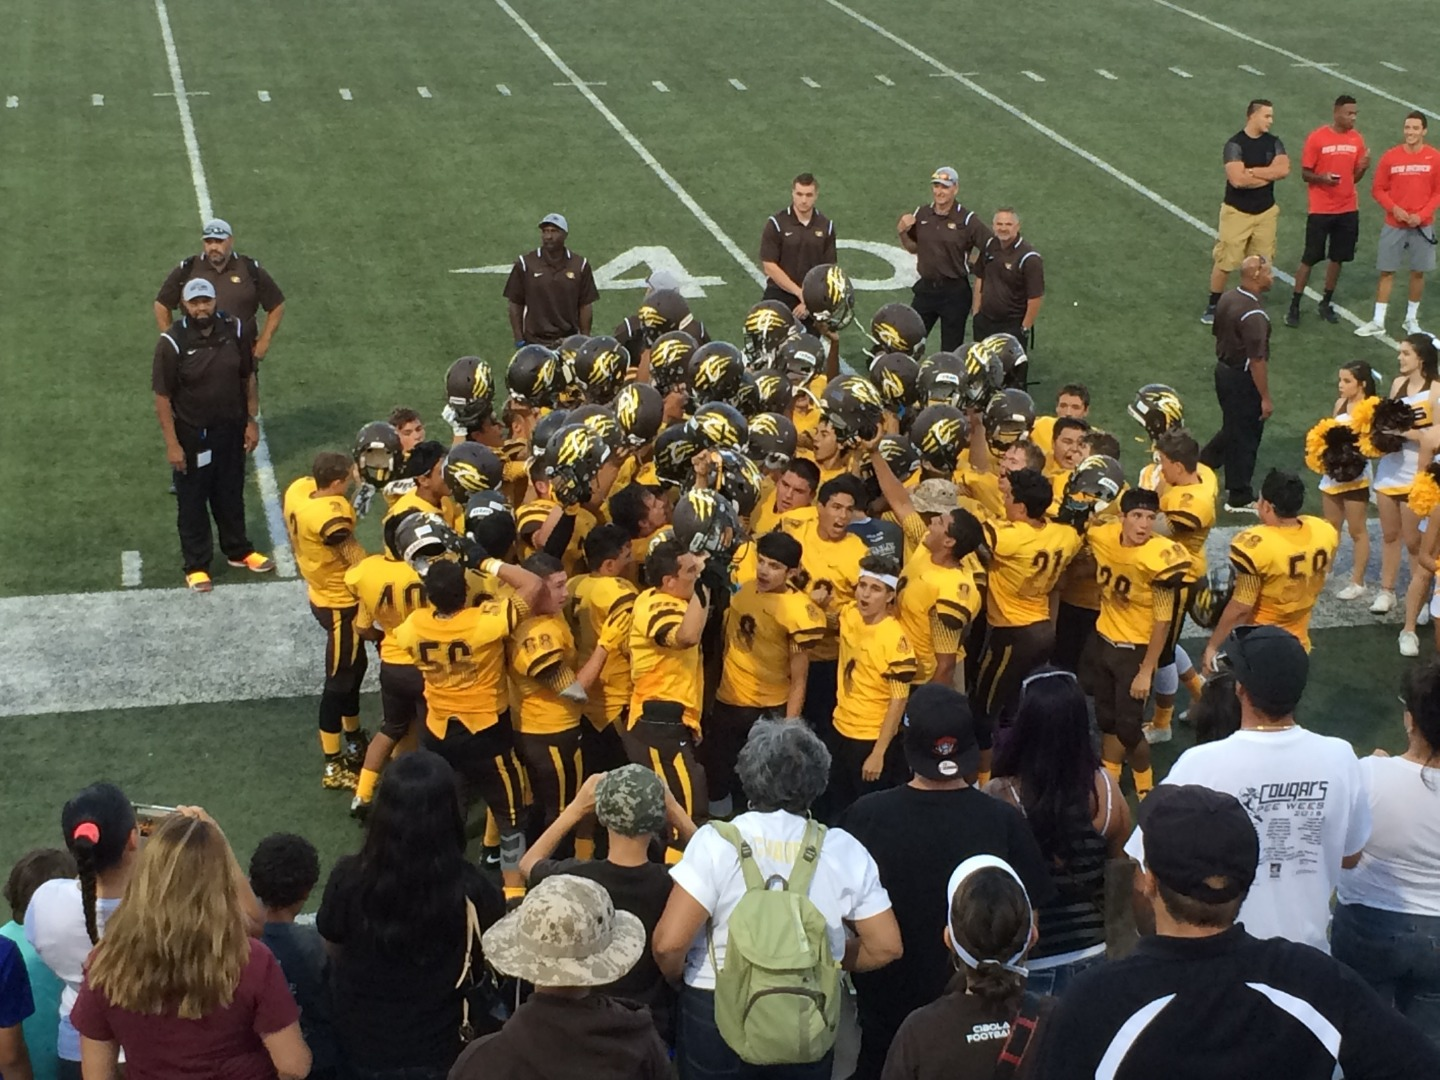 Photo of the football team in a huddle on the side of the field